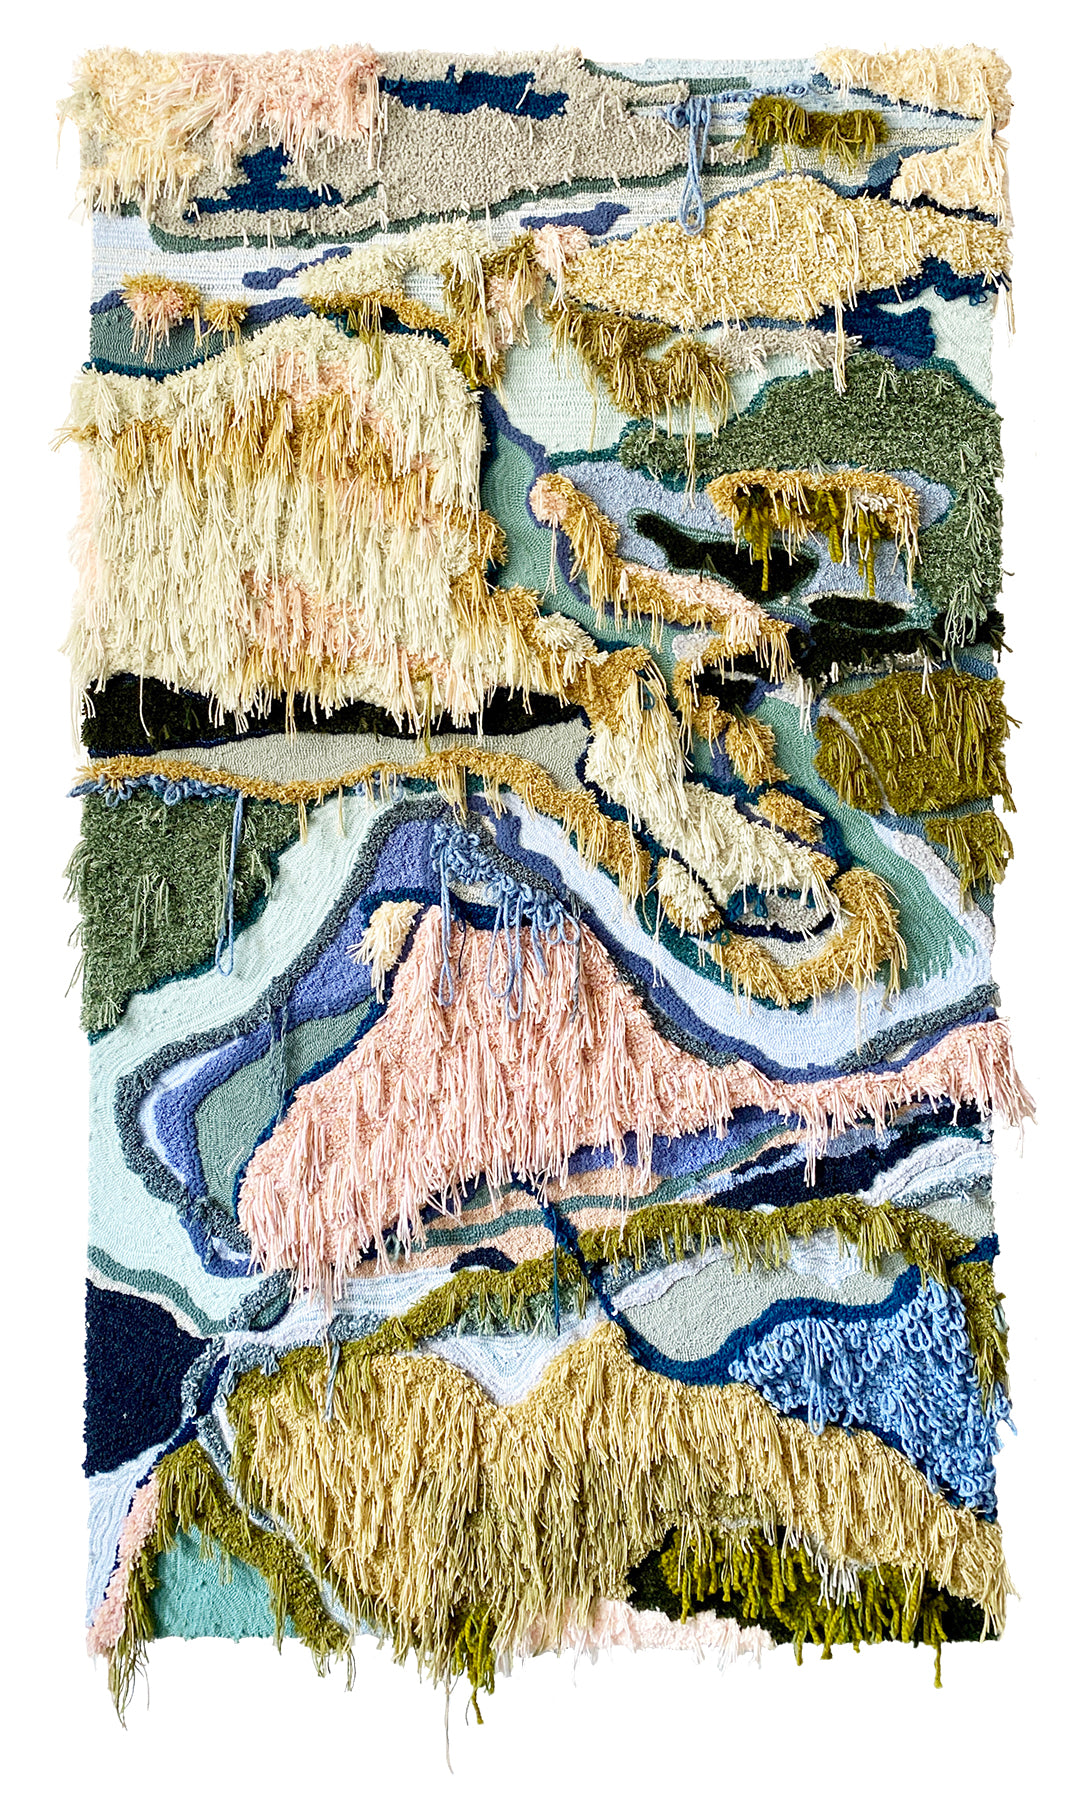 Trish Andersen tufted fiber art low country inspired landscape